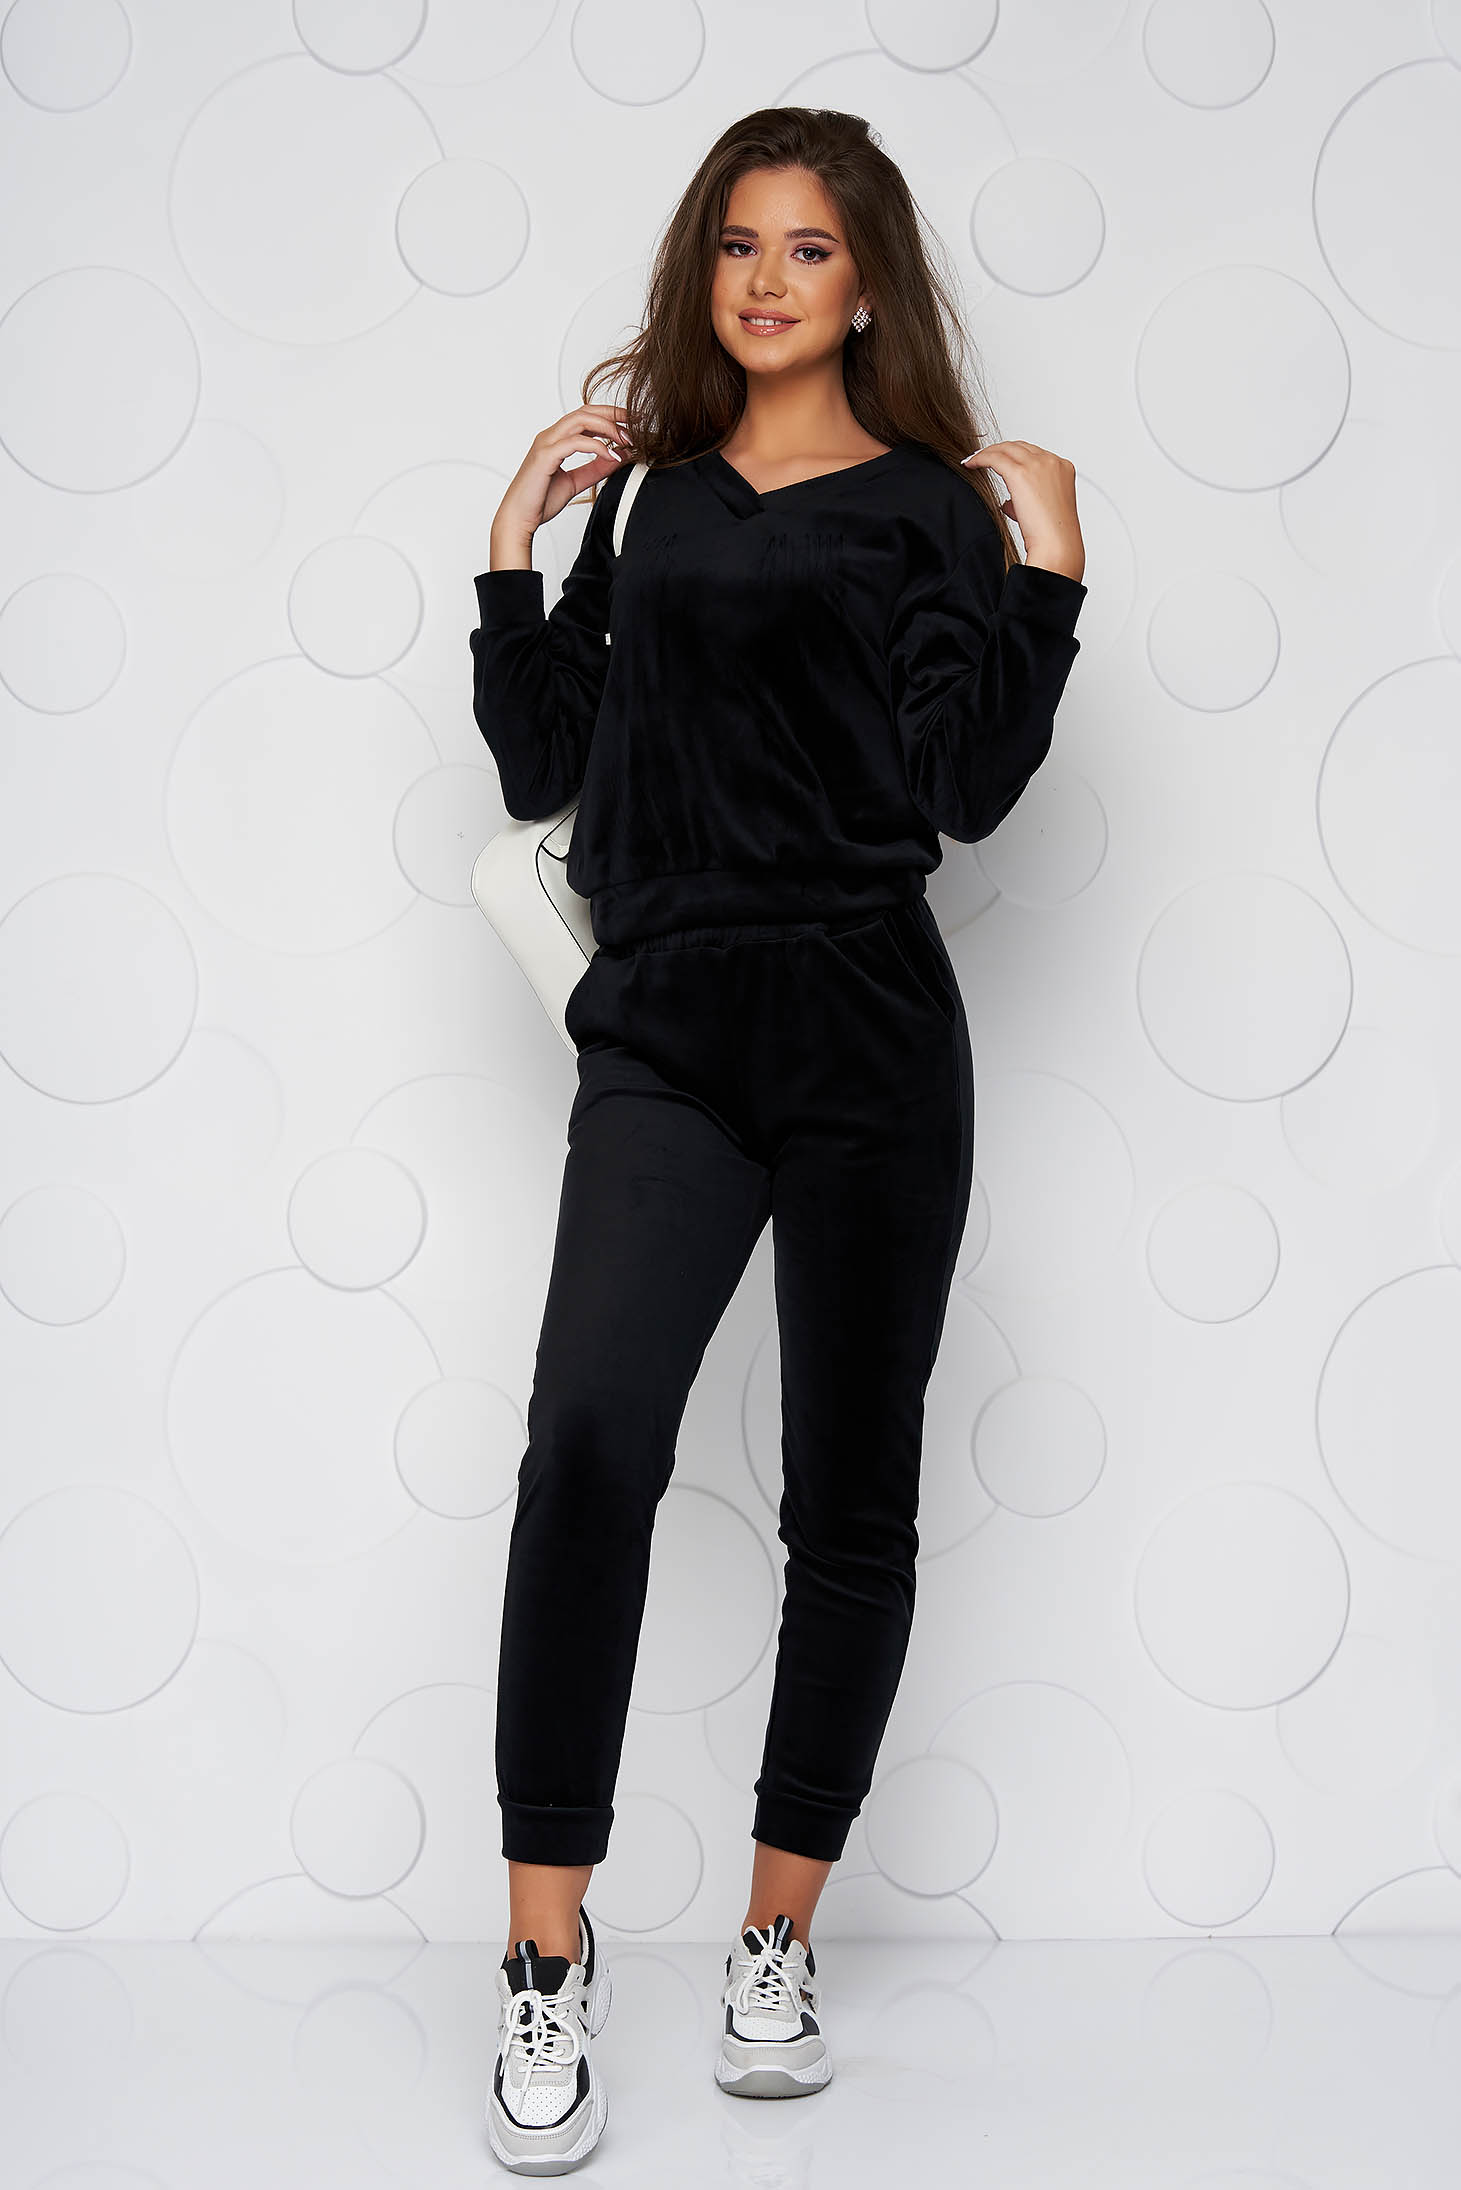 Black sport 2 pieces long loose fit velvet sporty from soft fabric